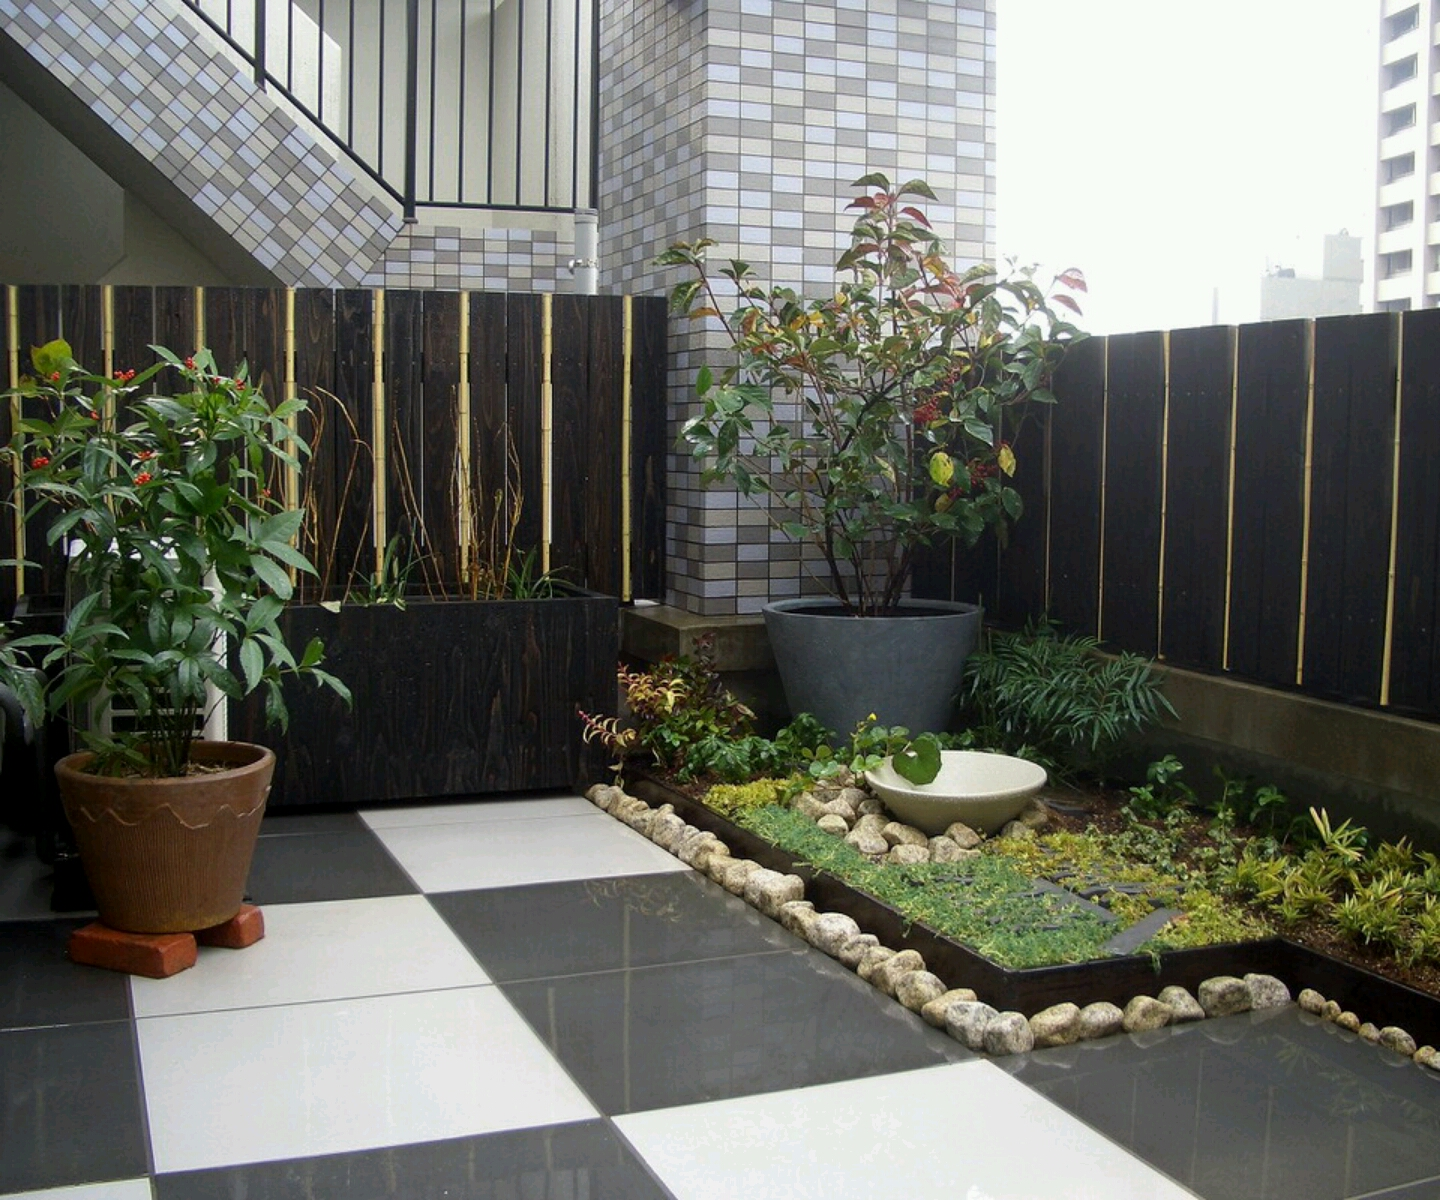 Ultra modern garden design inspiration interior designs for New garden design